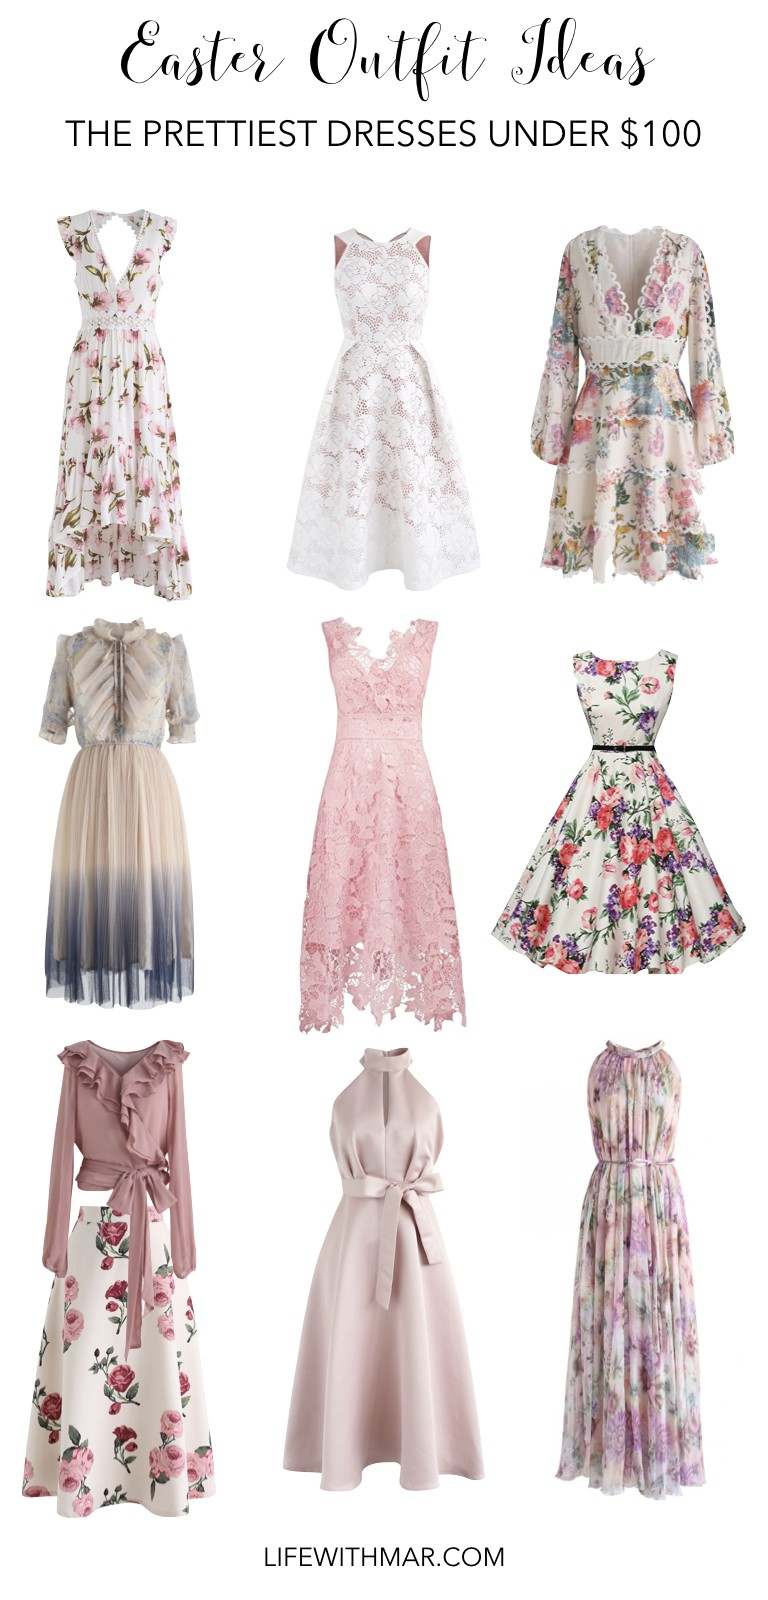 12b73e76c8e9 The Prettiest Easter Dresses Under $100  Life with Mar